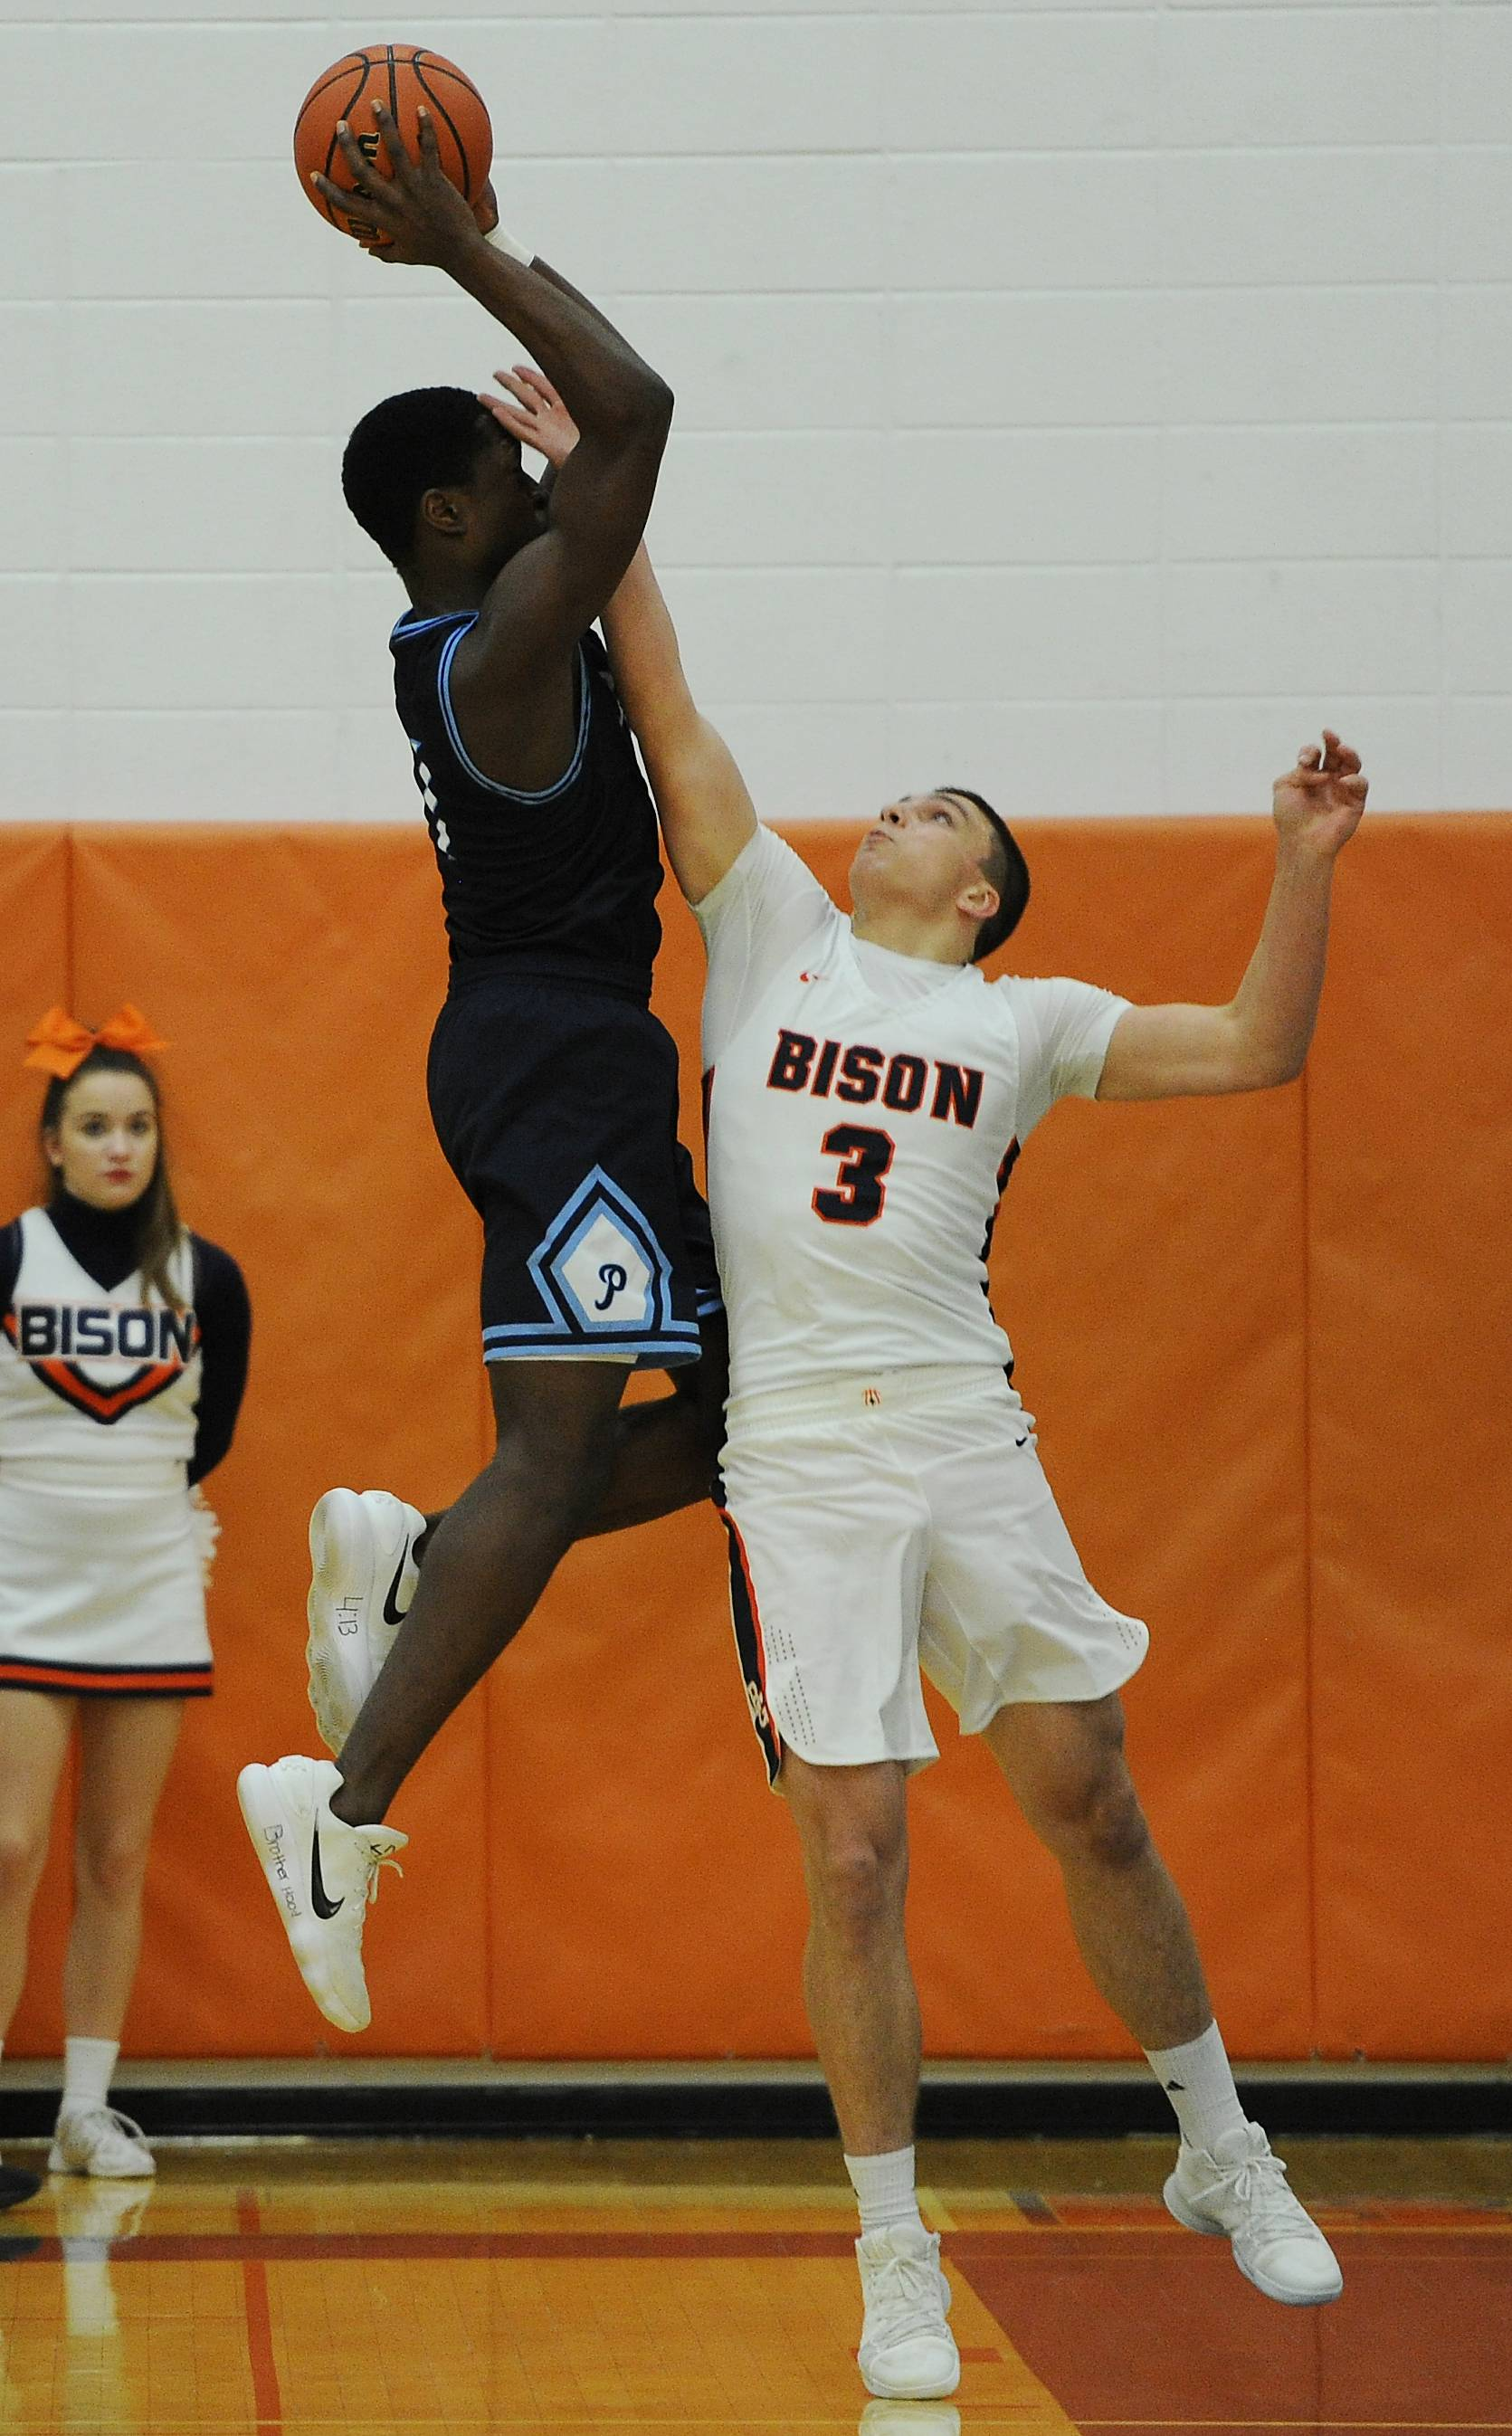 Prospect's Jalen McLachlan goes up for a rebound against Buffalo Grove's Tom Trieb and catches an elbow to his eye, which knocked him out of most of the first half Friday at Buffalo Grove.